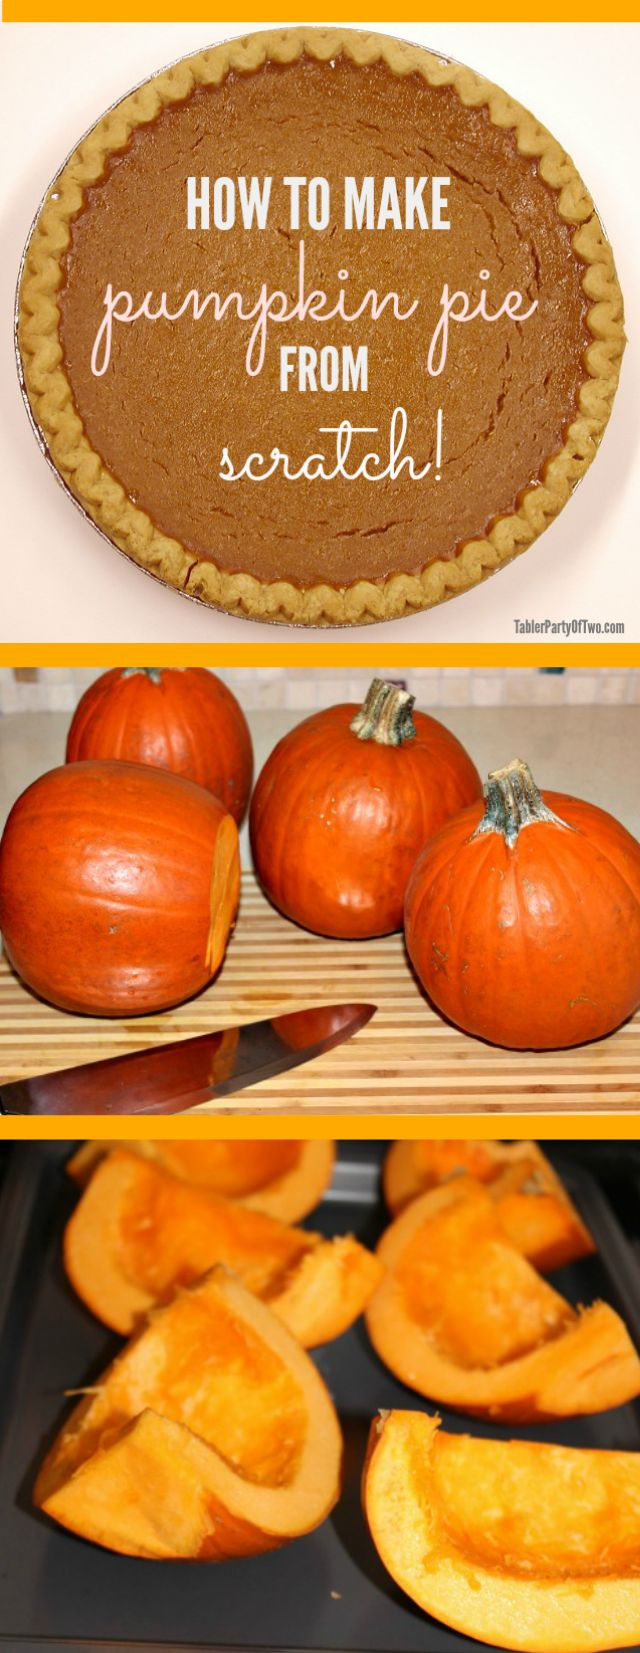 Learn to make Pumpkin Pie from Scratch! It's the most AMAZING pumpkin pie you'll ever taste!